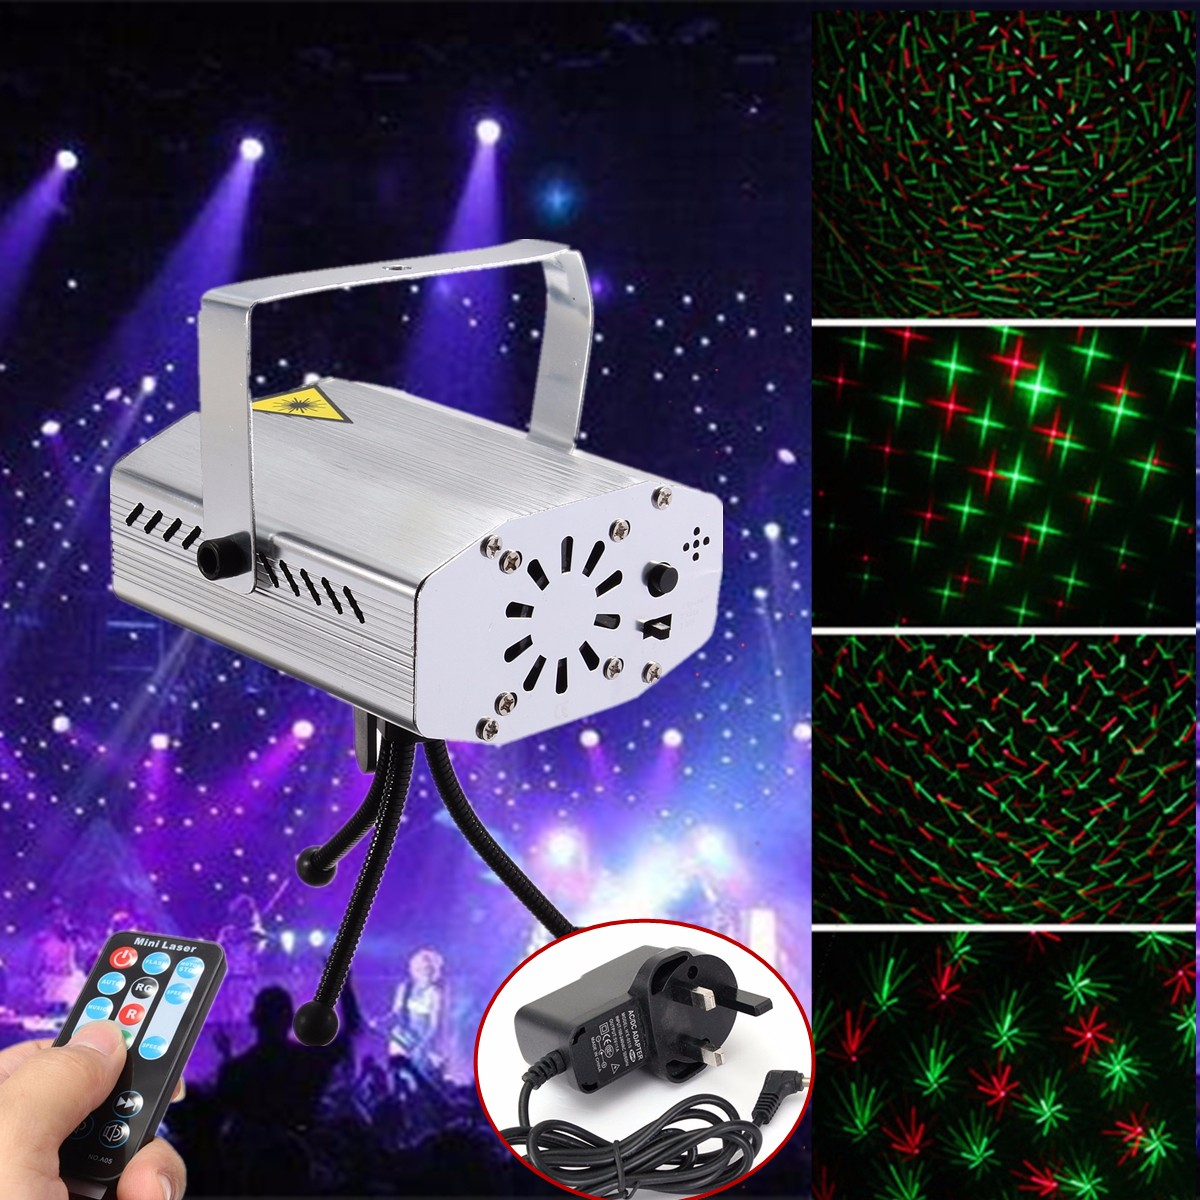 mini r g auto voice xmas dj club party led laser stage light projector remote uk lazada malaysia. Black Bedroom Furniture Sets. Home Design Ideas